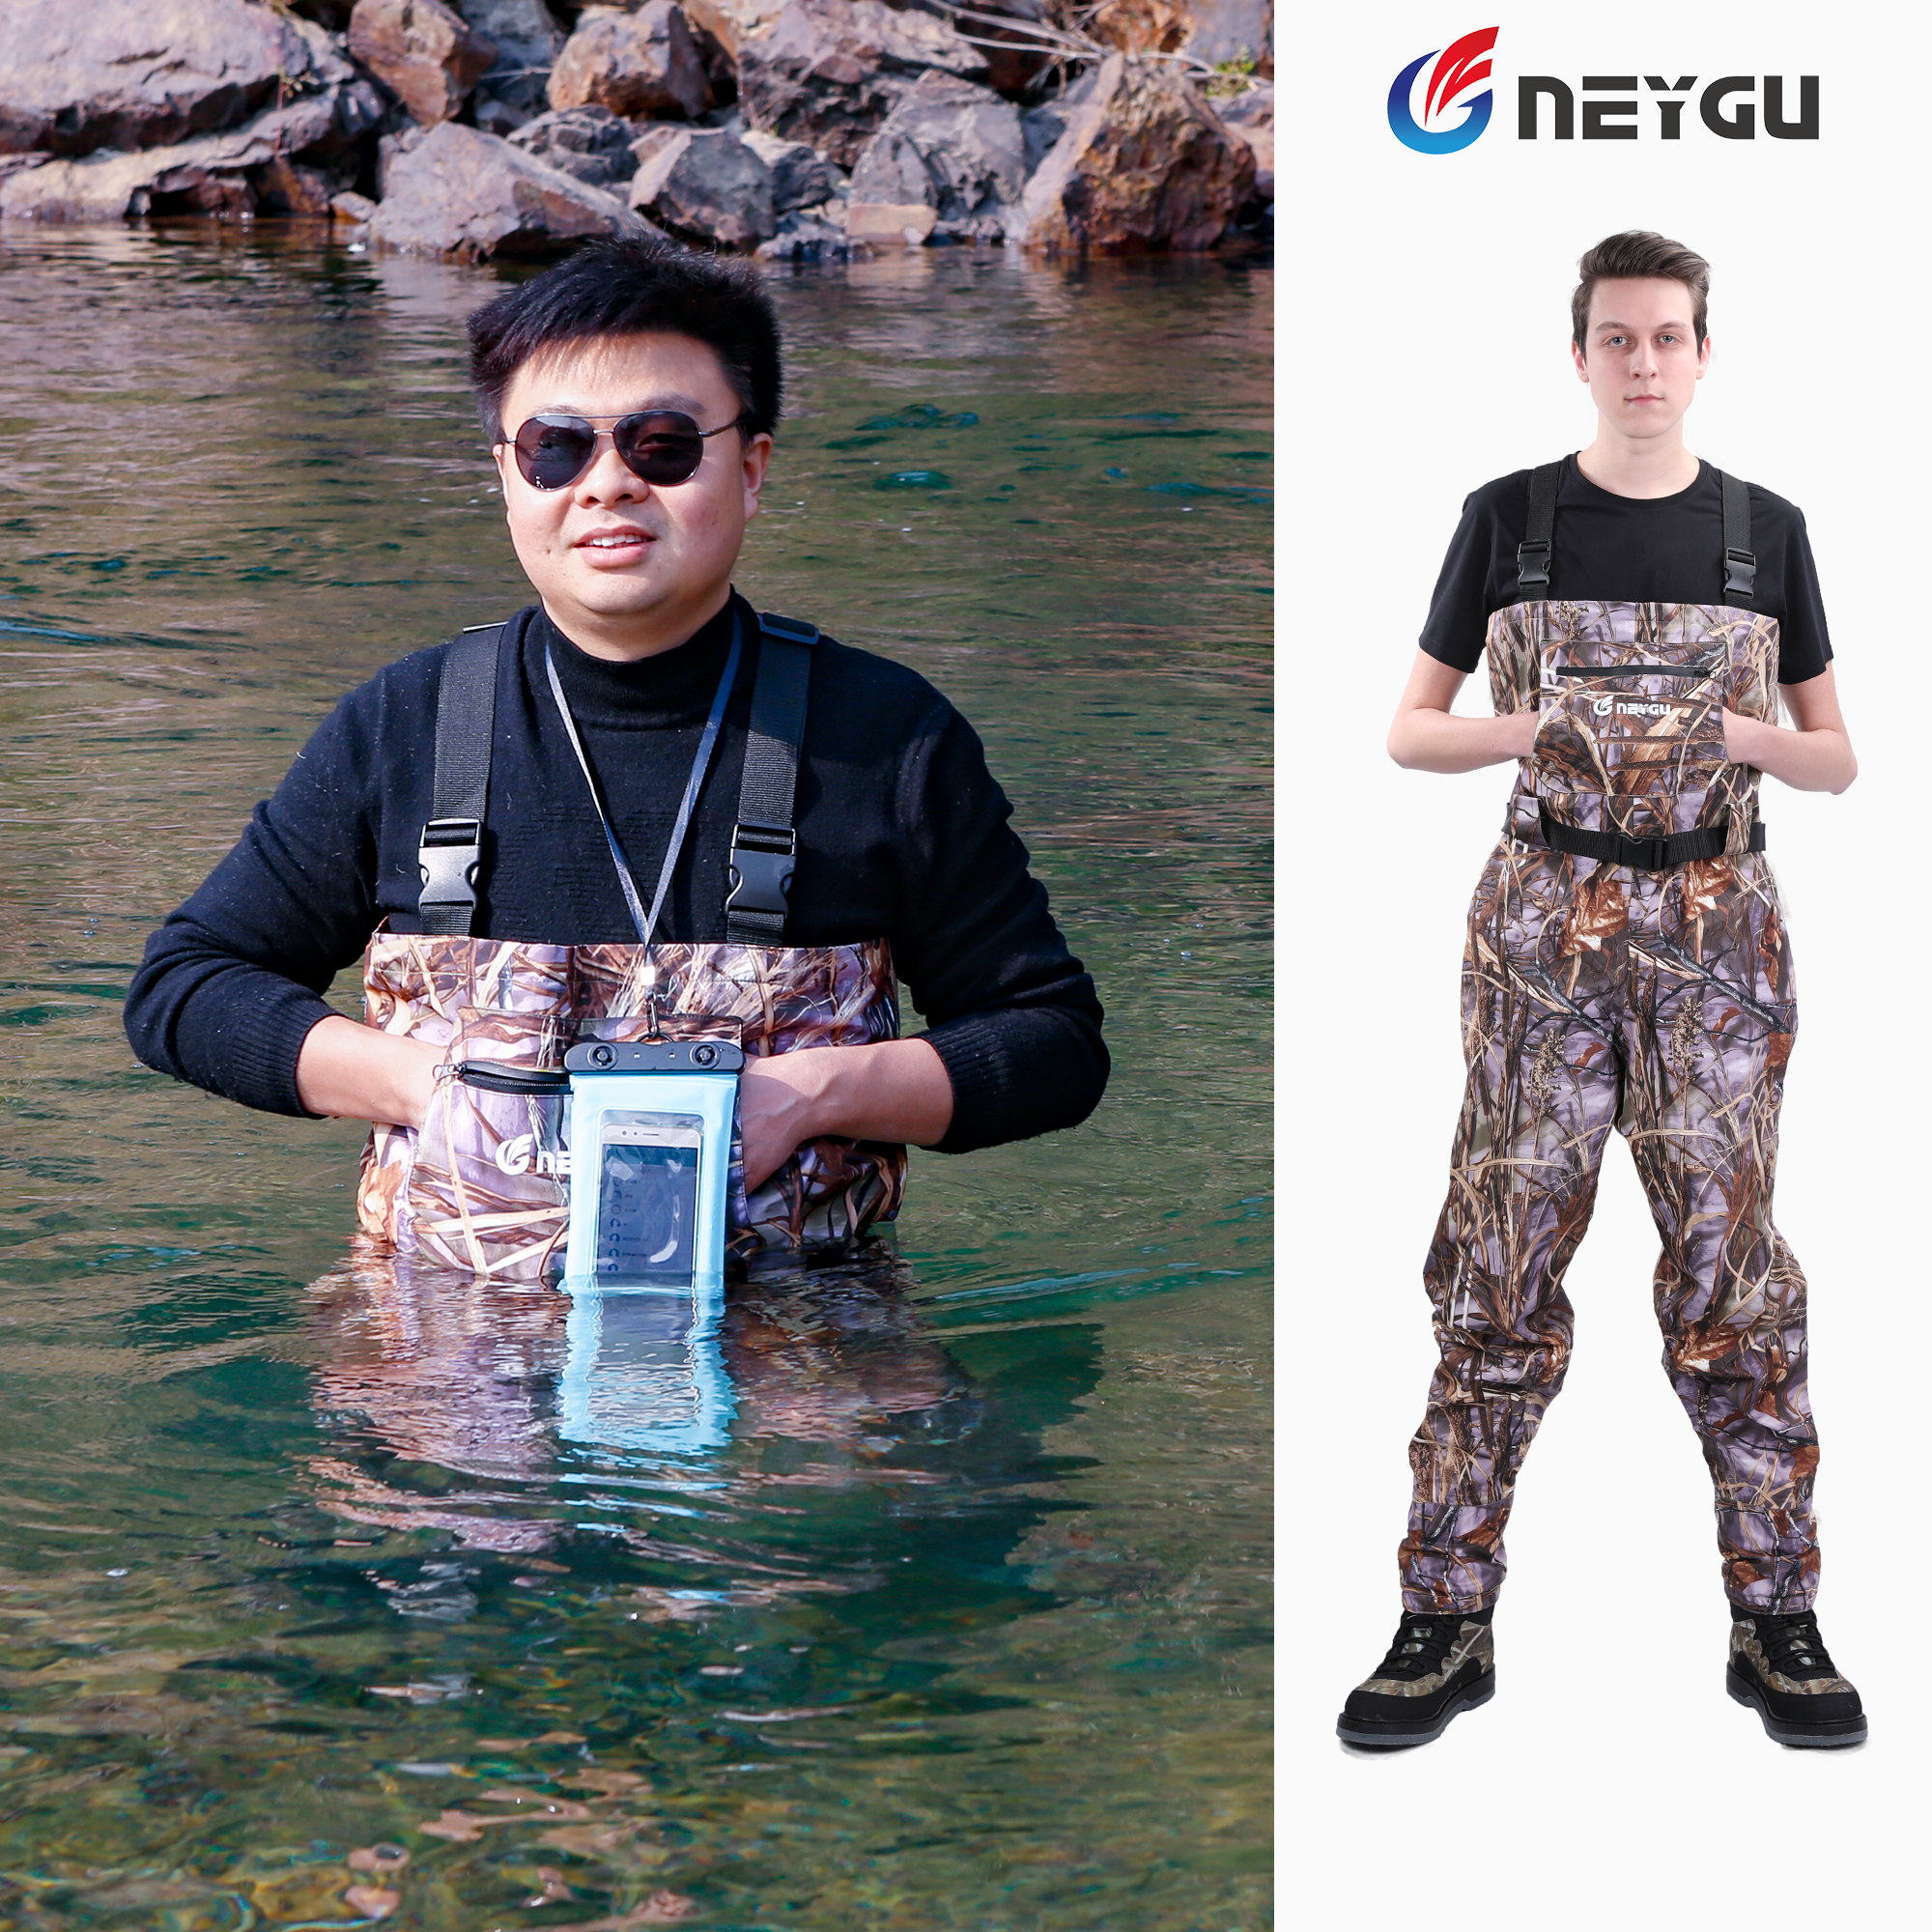 Waterproof Chest Fishing Waders Breathable Rafting Waders with Stocking Foot Hunting Pants for Men for muddy